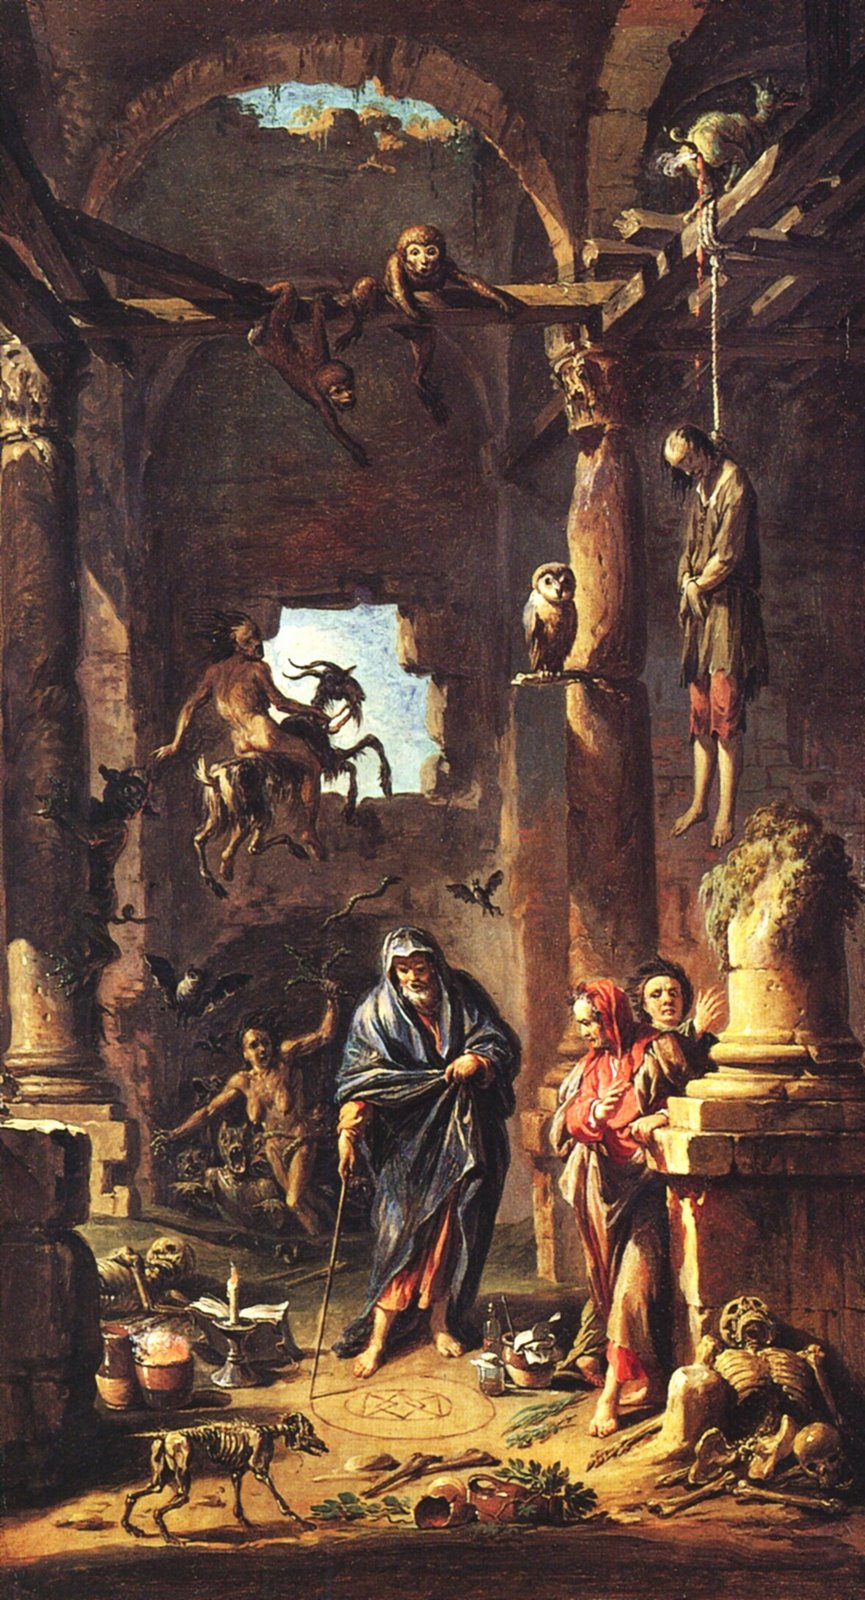 Andrea Locatelli - Magic Scene, 1741